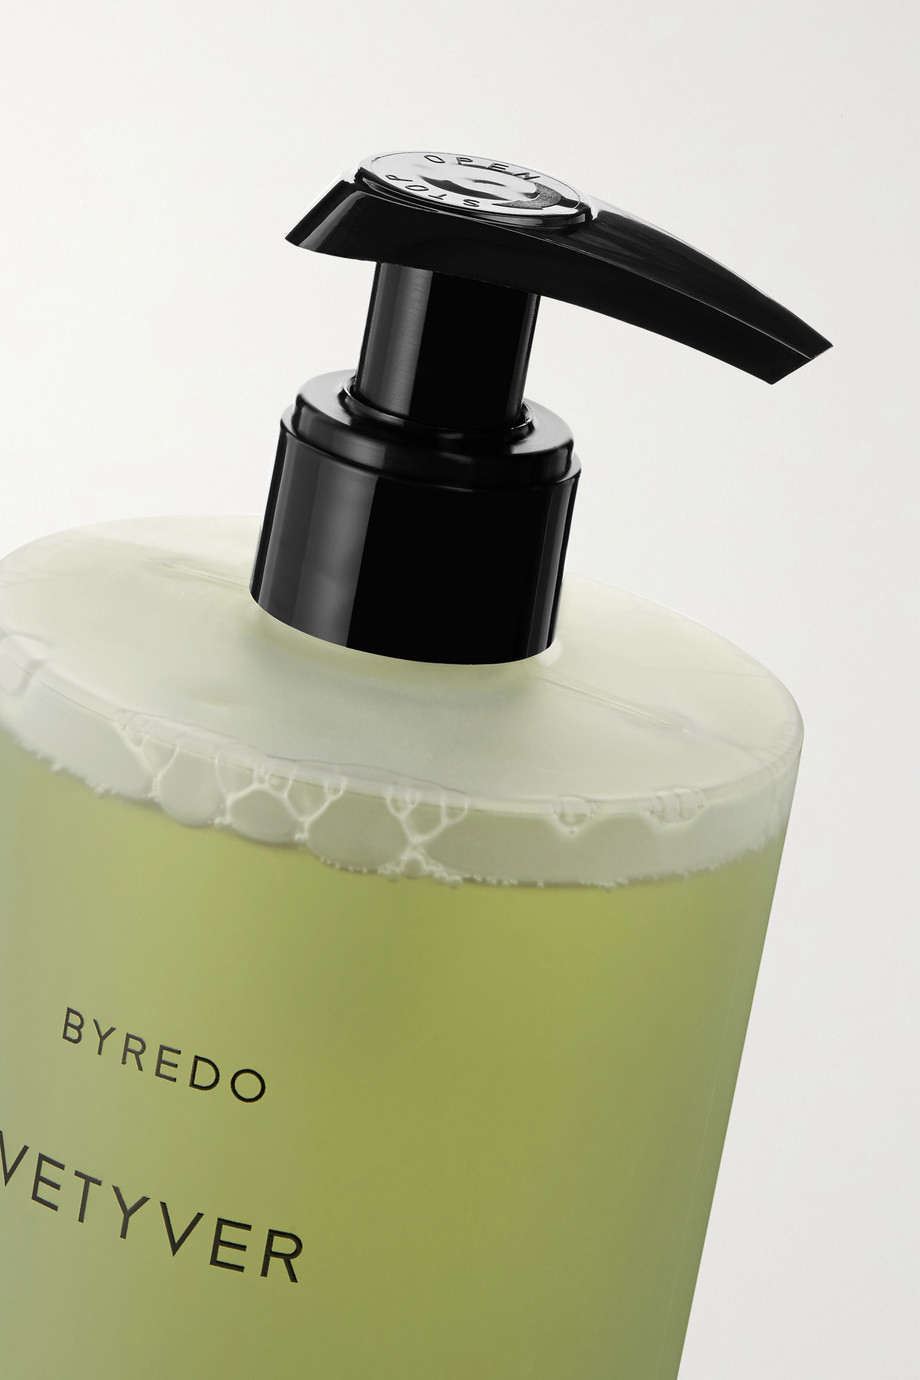 Byredo Vetyver Hand Wash, 450 ml – Handseife